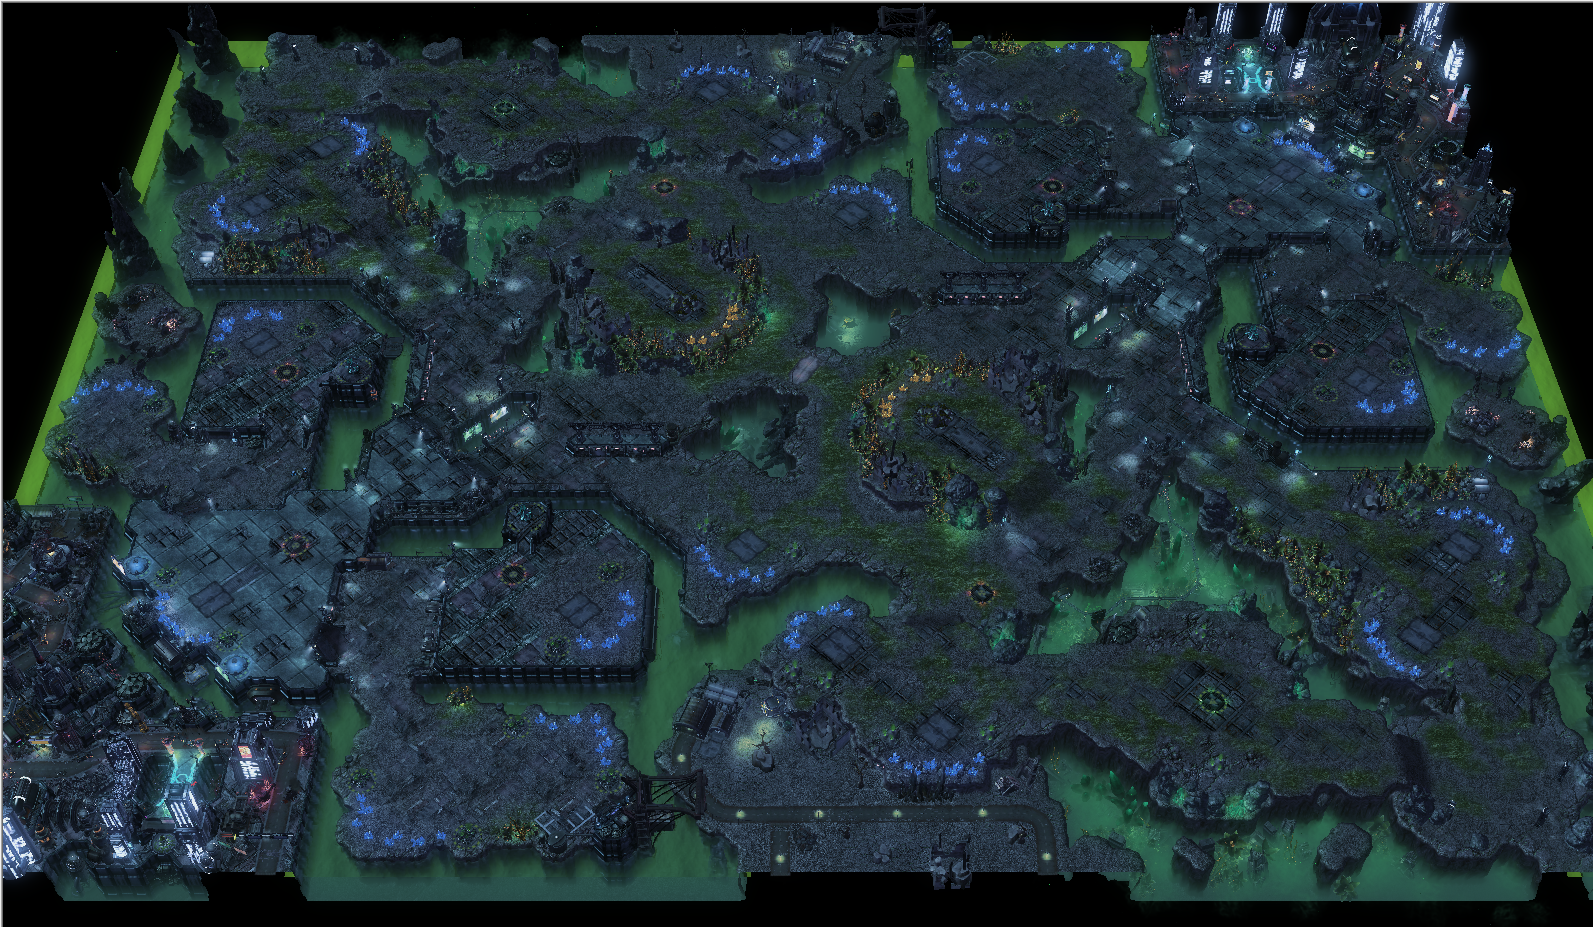 Images - Vhun Wilderness Preserve - Maps - Projects - SC2Mapster on monte carlo maps, fusion maps, tf2 maps, tacoma maps, explorer maps, diablo maps, gw2 maps,